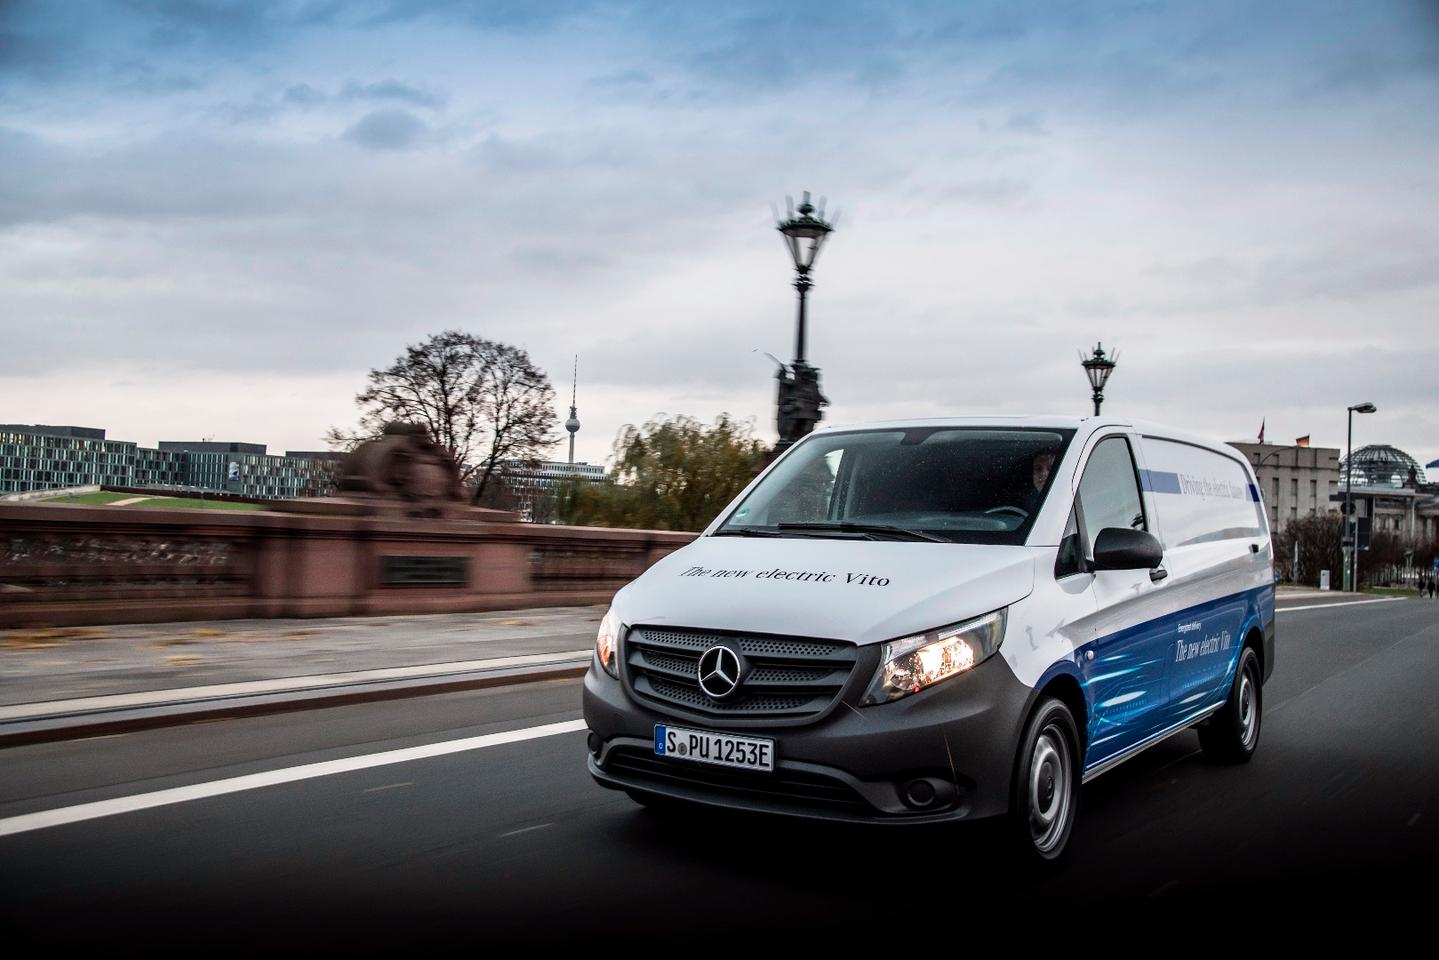 Mercedes is initially restricting eVito pre-orders to Germany with the first 1,000 customers receiving a complimentary Wallbox charging system